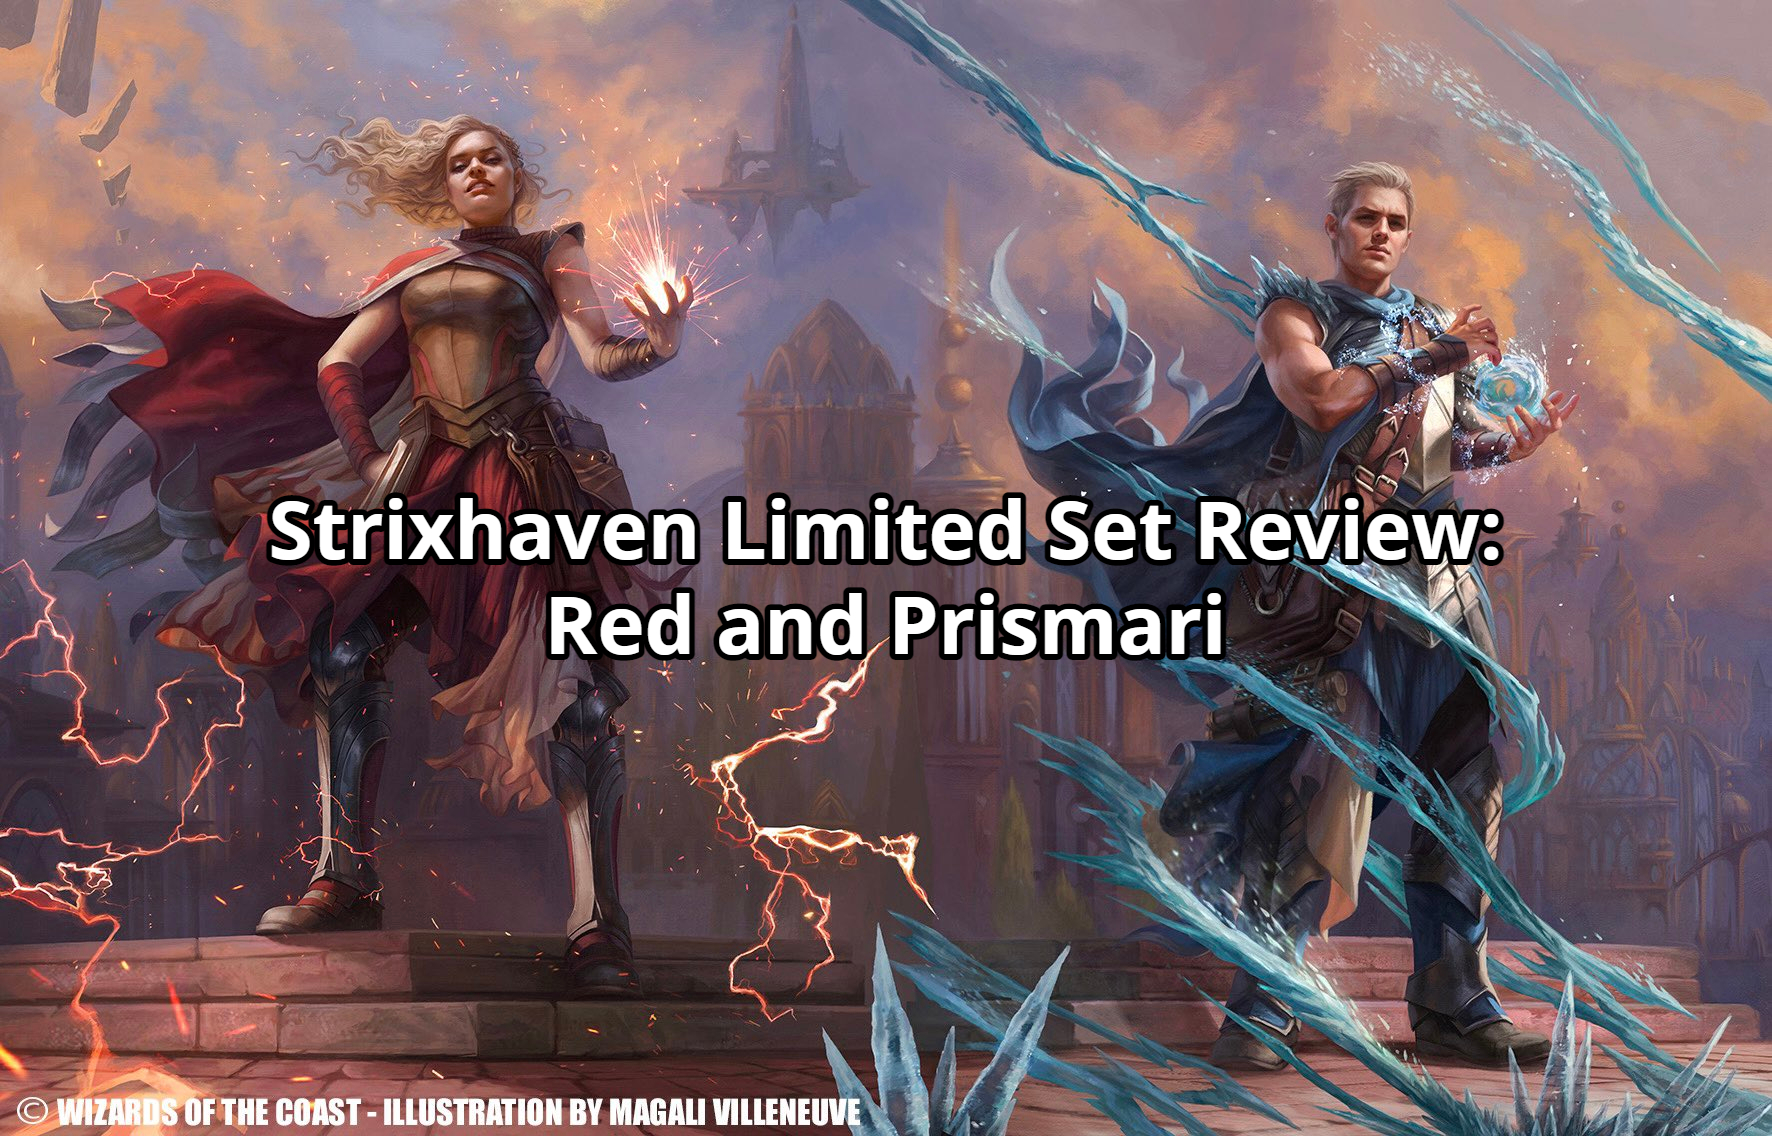 Strixhaven Limited Set Review: Red and Prismari